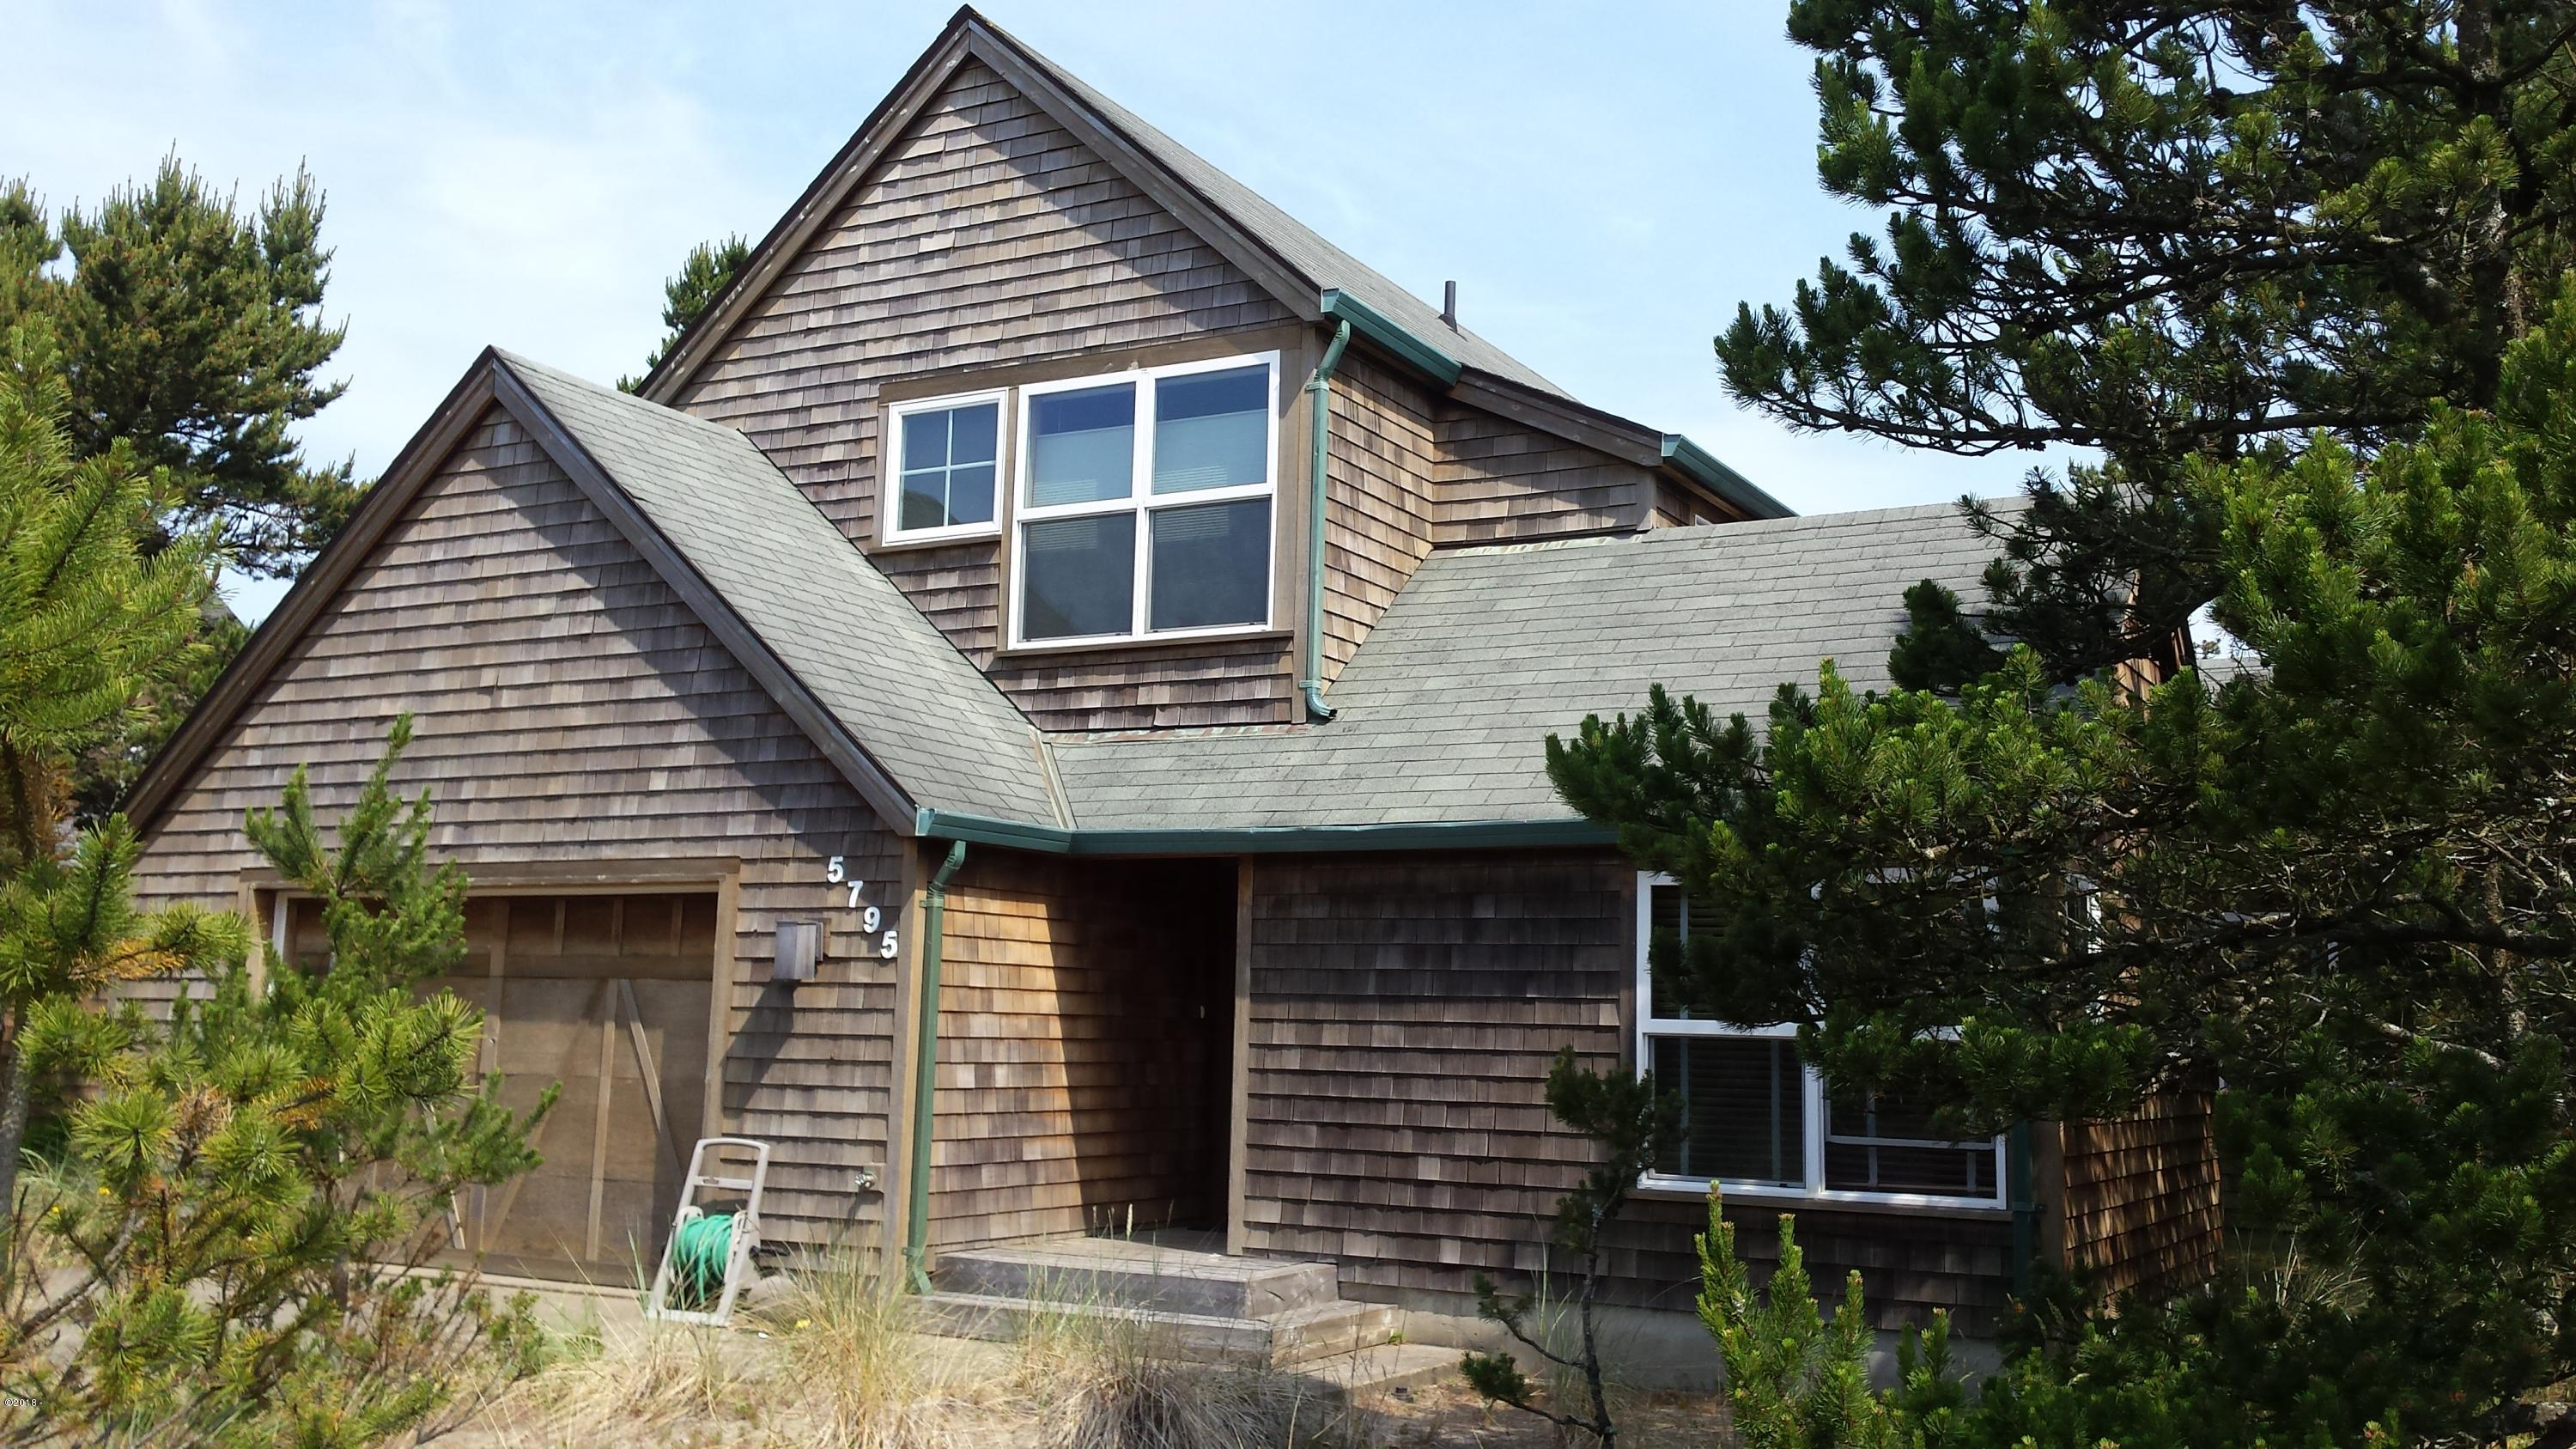 5795 Barefoot Ln. Share K, Pacific City, OR 97135 - Exterior